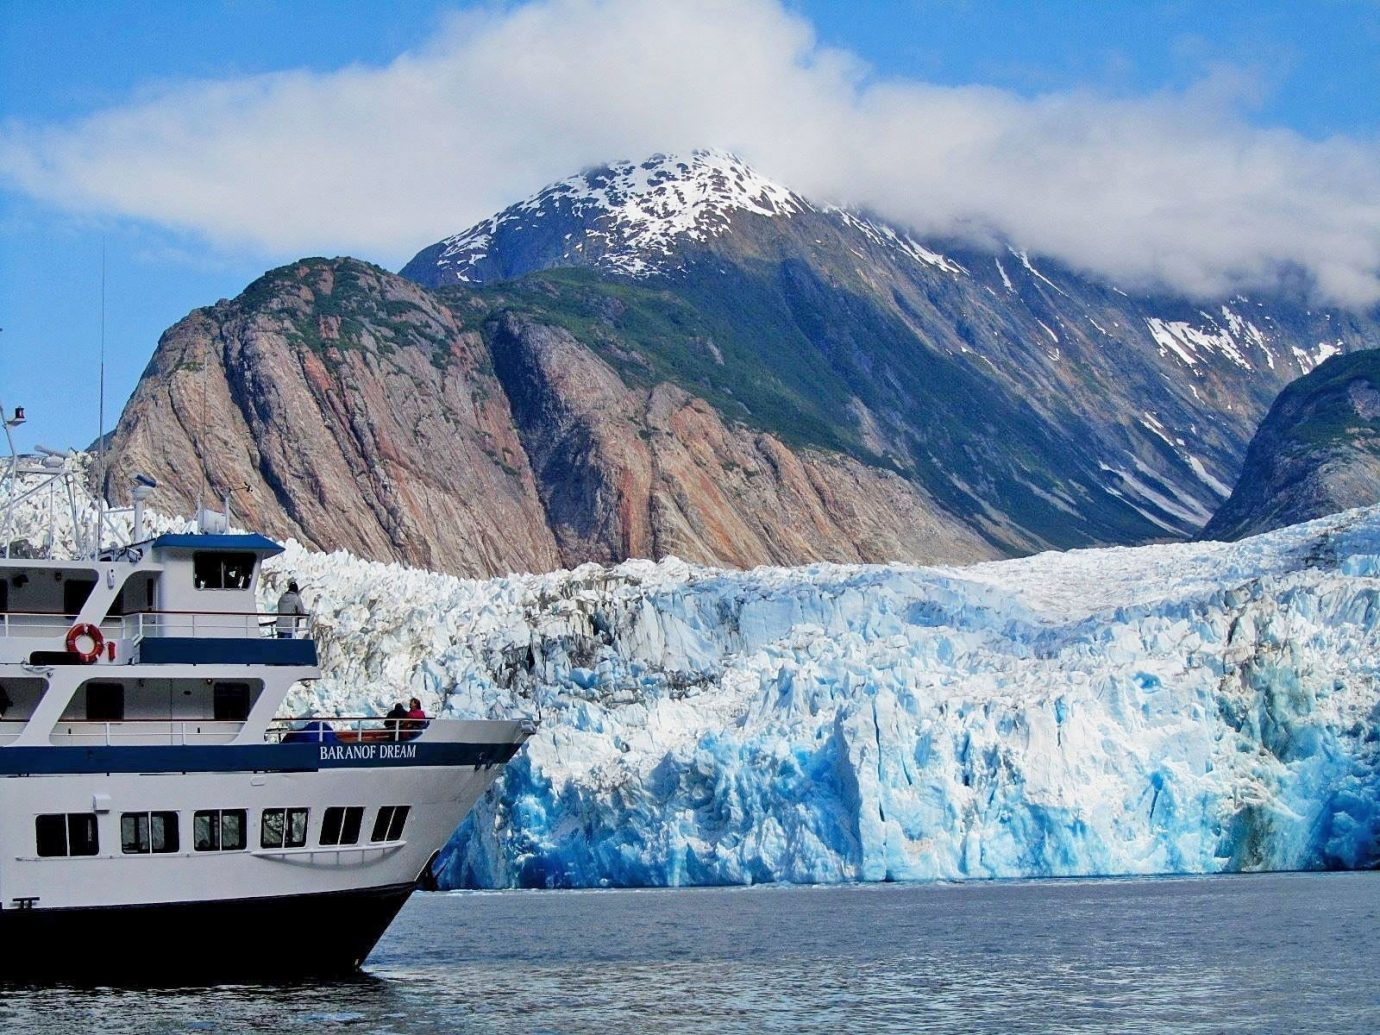 Trip Ideas mountain outdoor sky geographical feature landform Boat glacier vehicle fjord mountain range glacial landform Sea arctic arctic ocean Lake